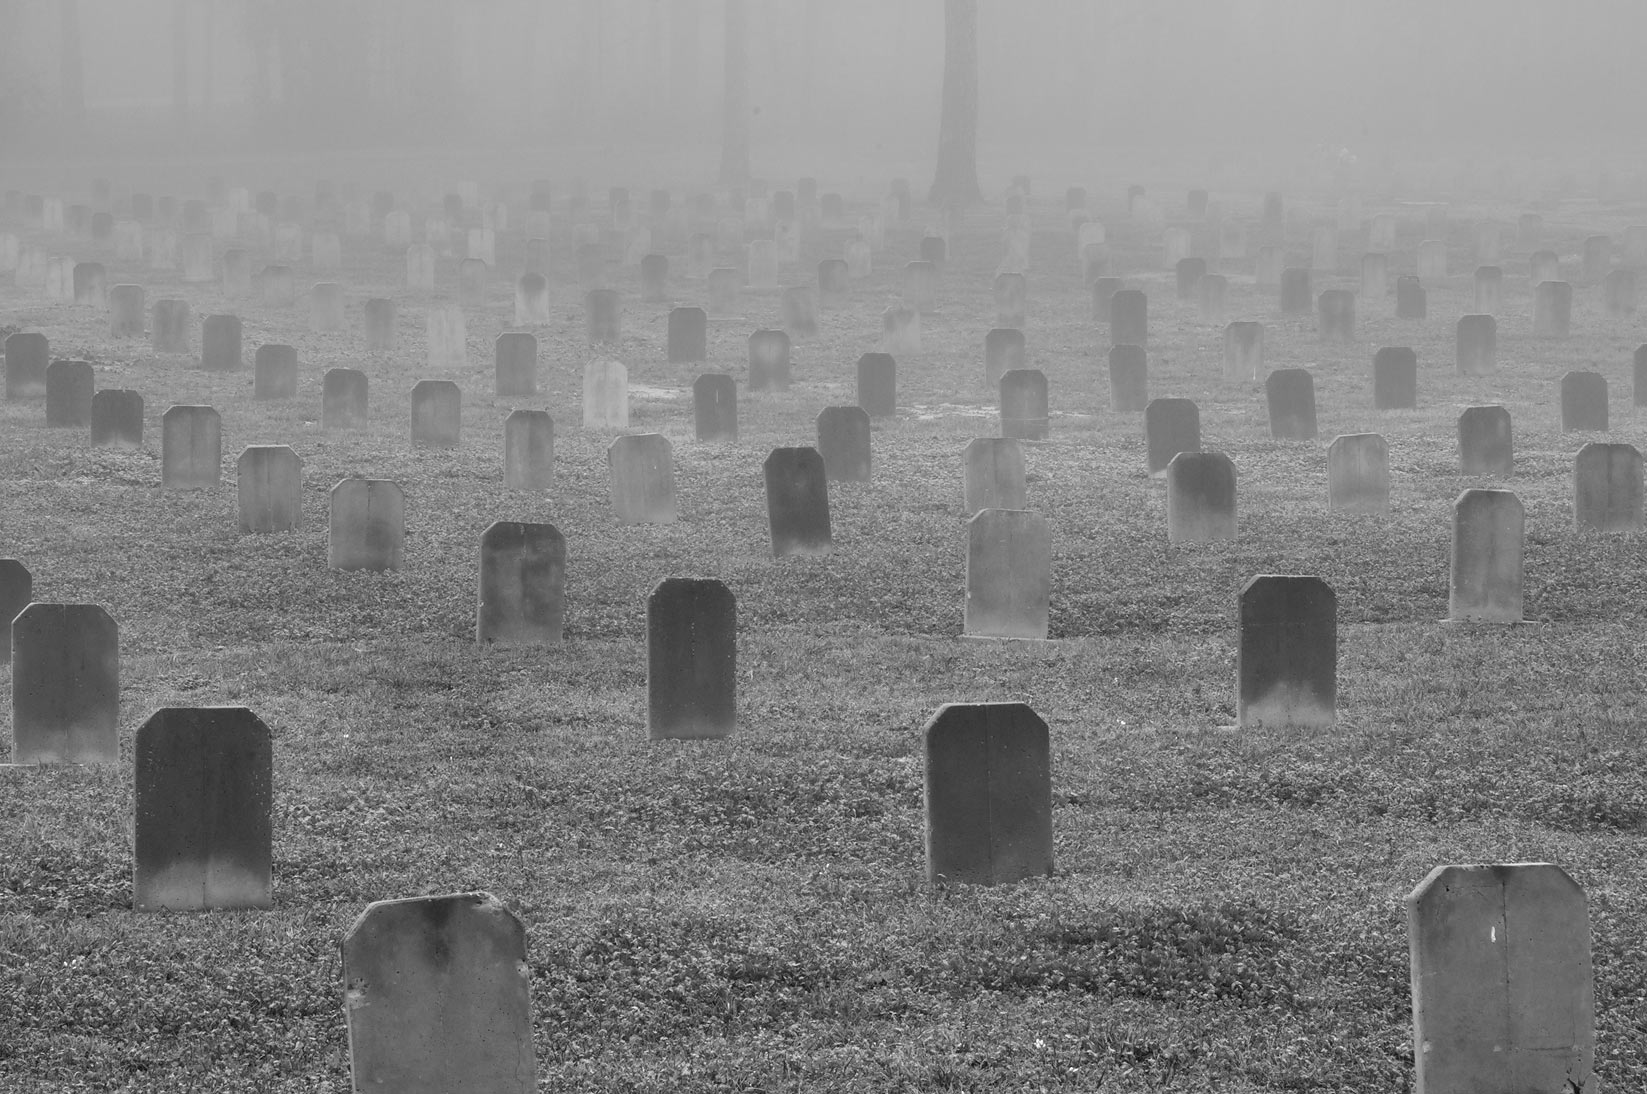 Headstones of TDCJ Captain Joe Byrd (Peckerwood Hill) Cemetery in fog. Huntsville, Texas